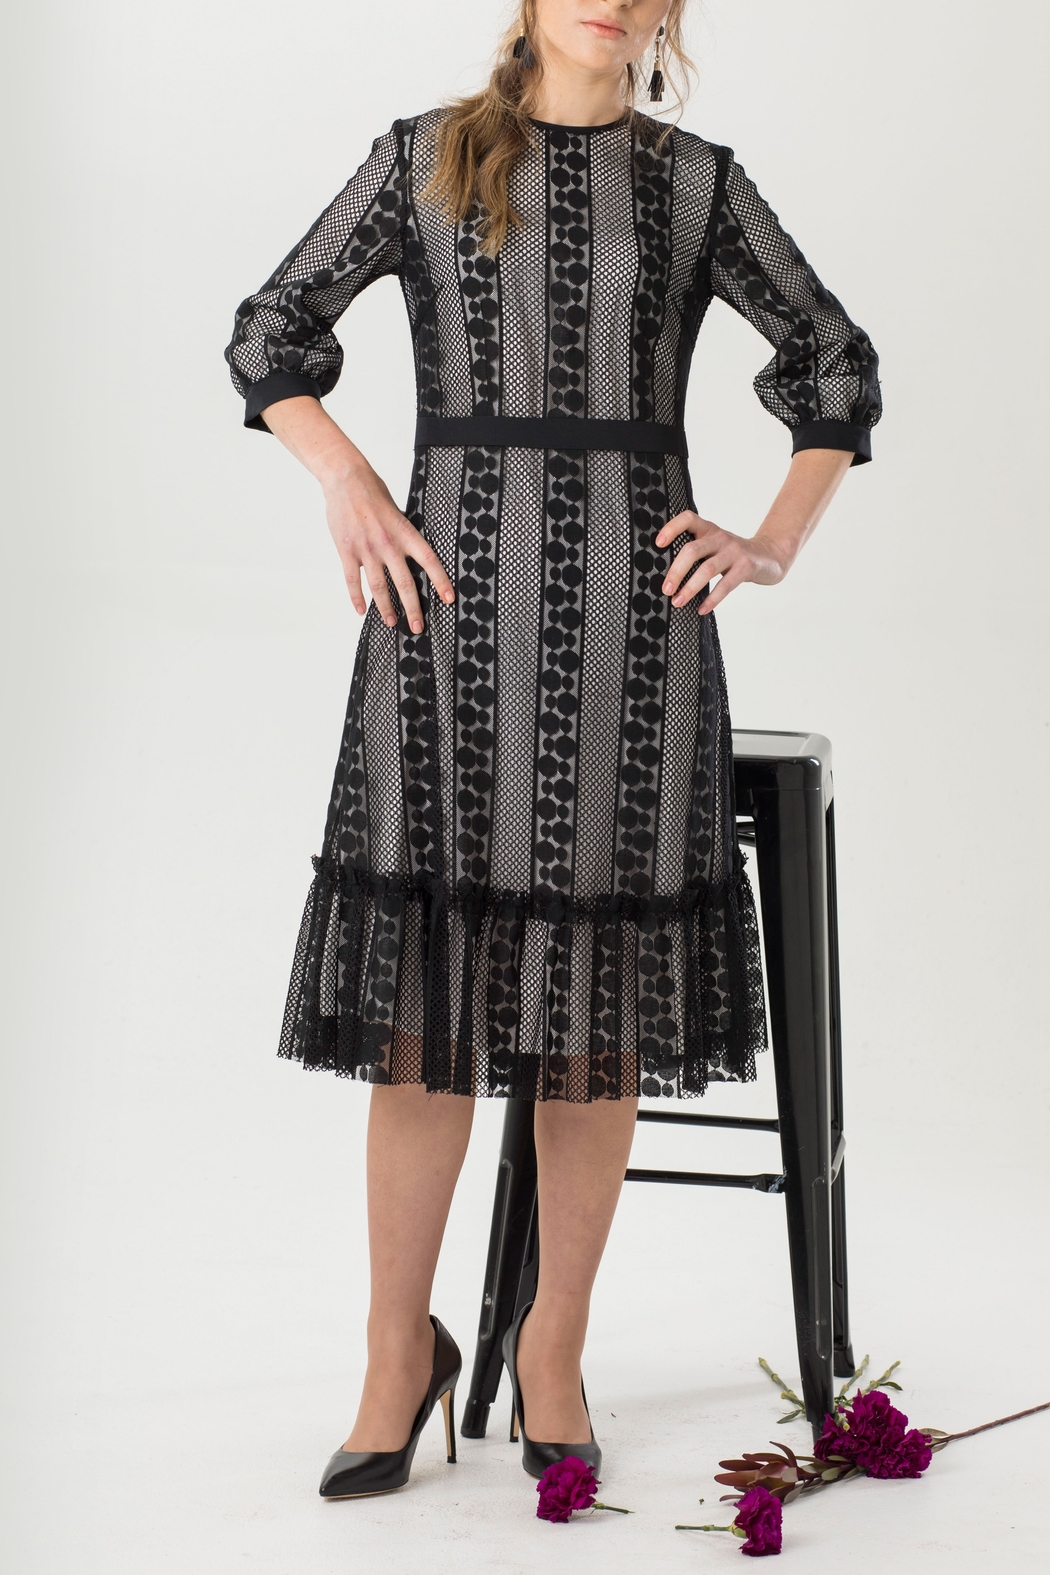 Luxe Label Black & White 3/4 Sleeve Lace Flare Knee Length Dress - Main Image